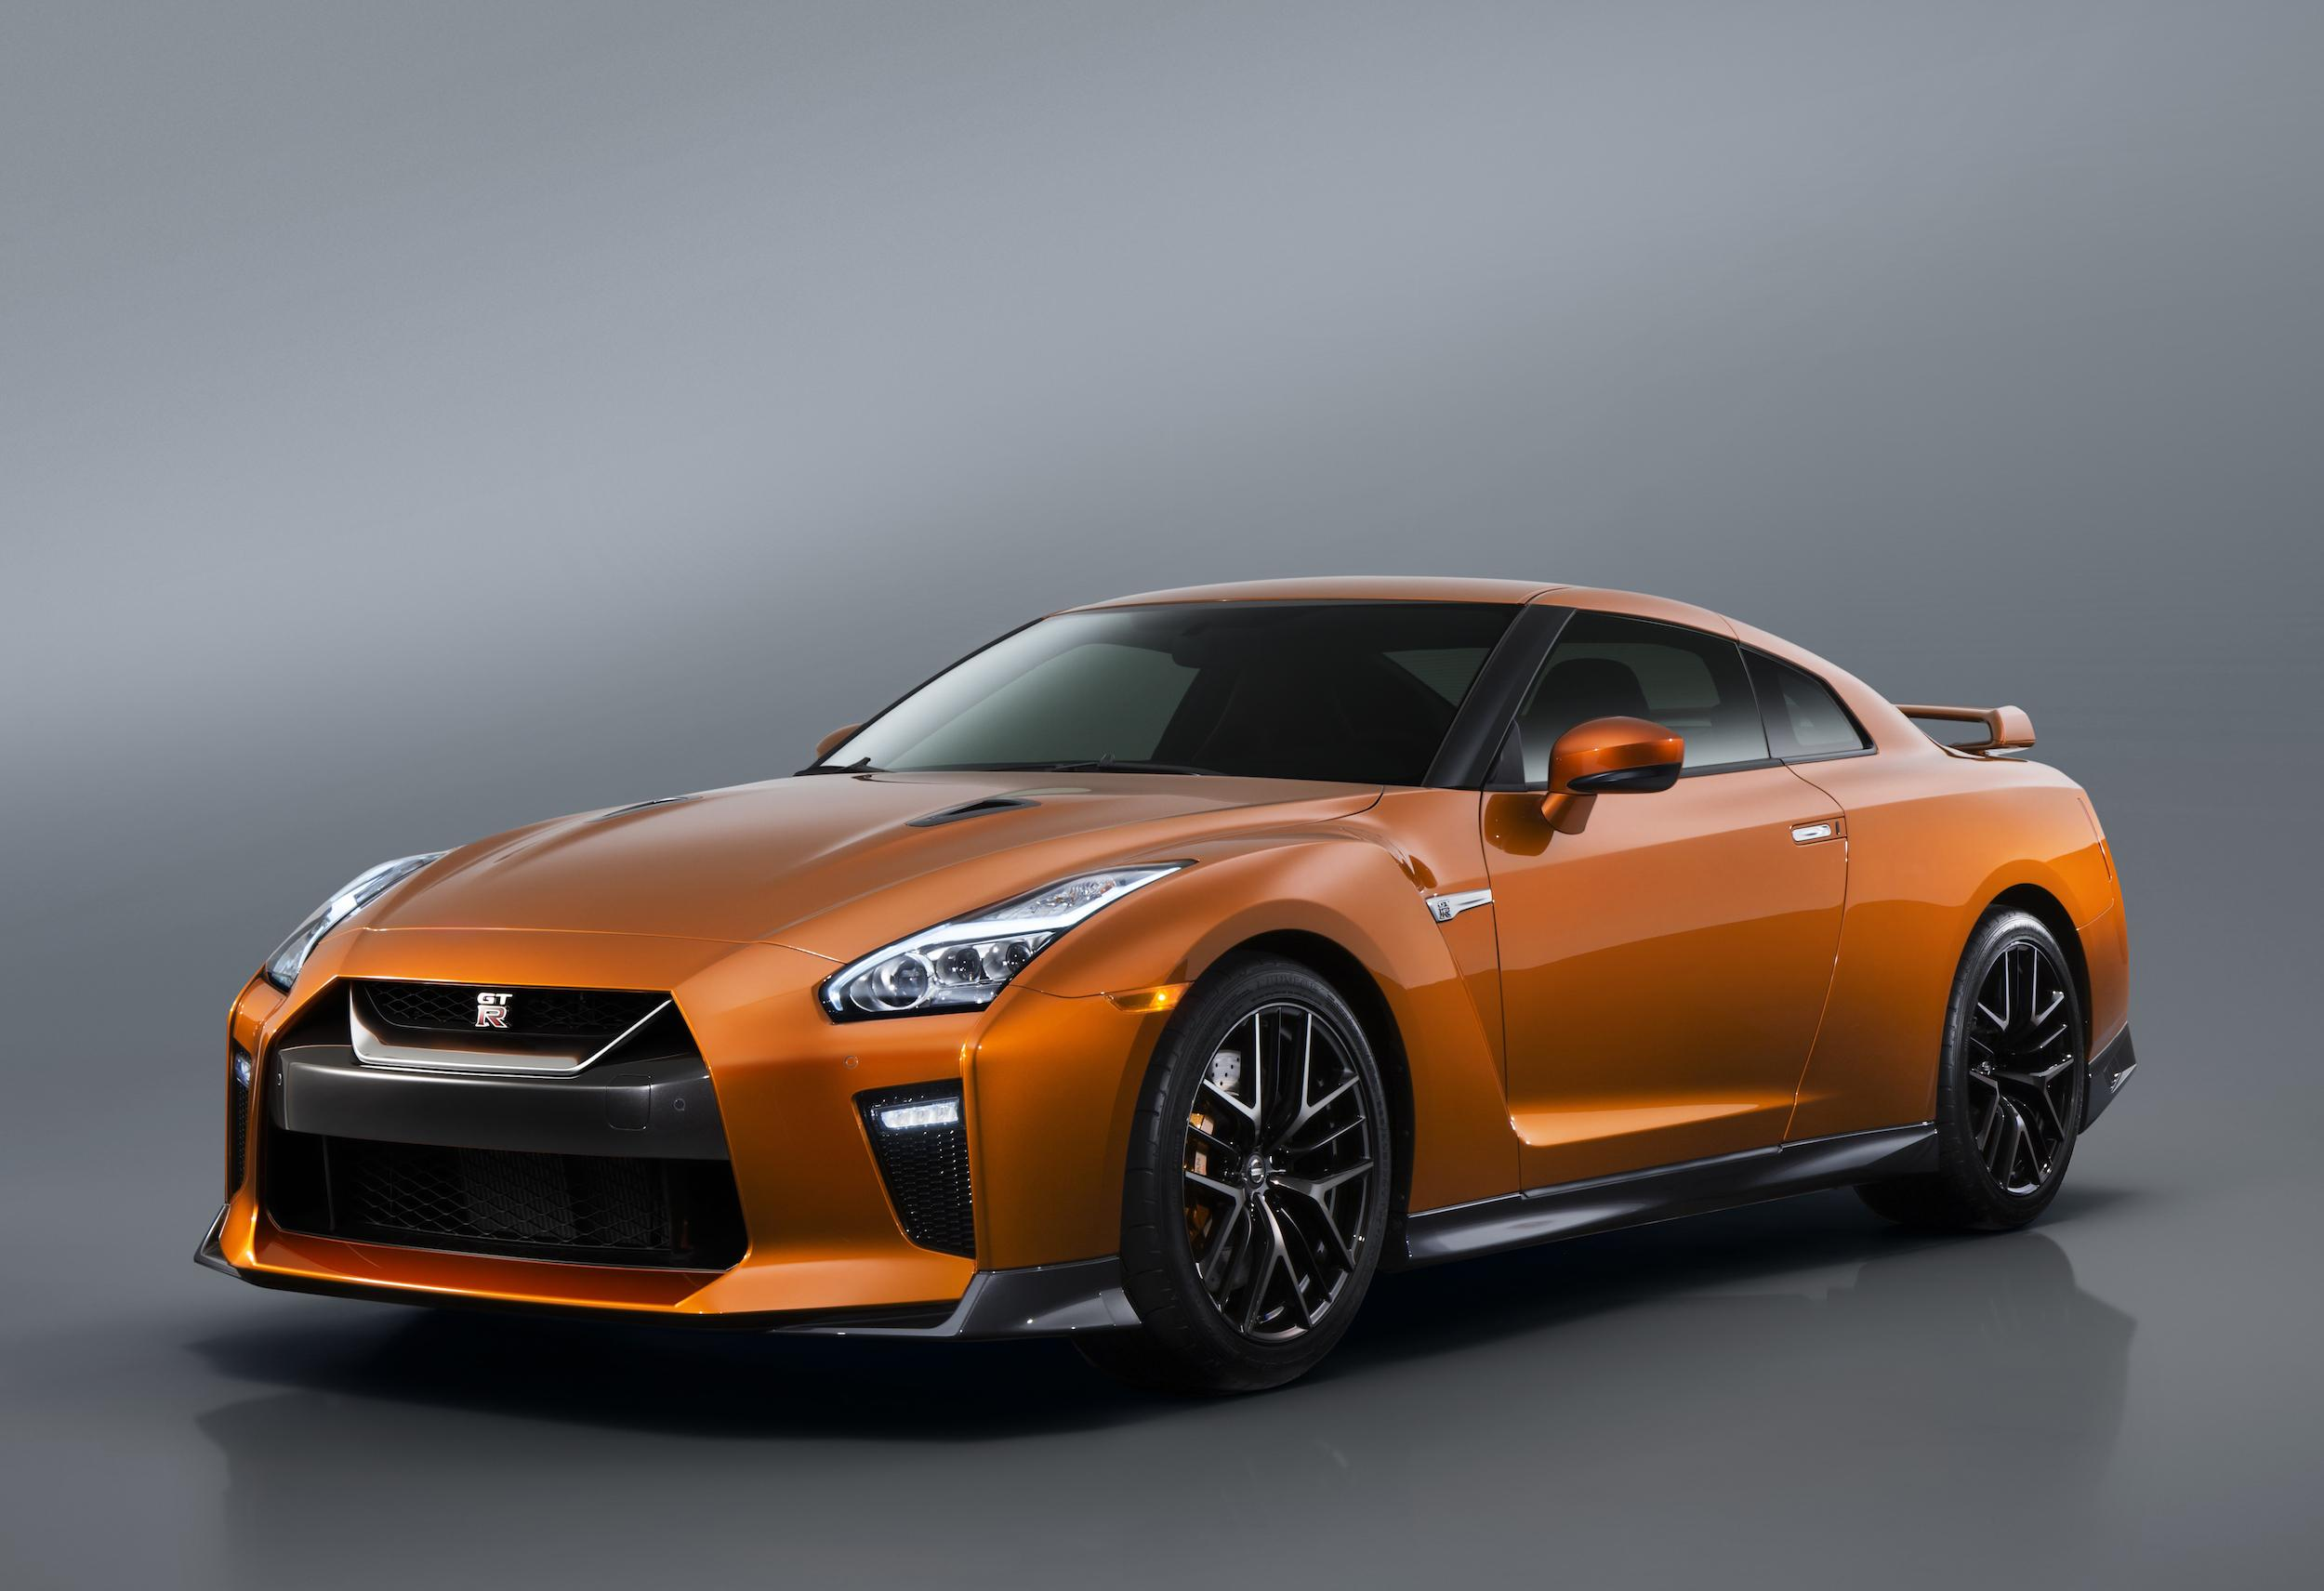 Nissan Gt R R35 570ps Specs